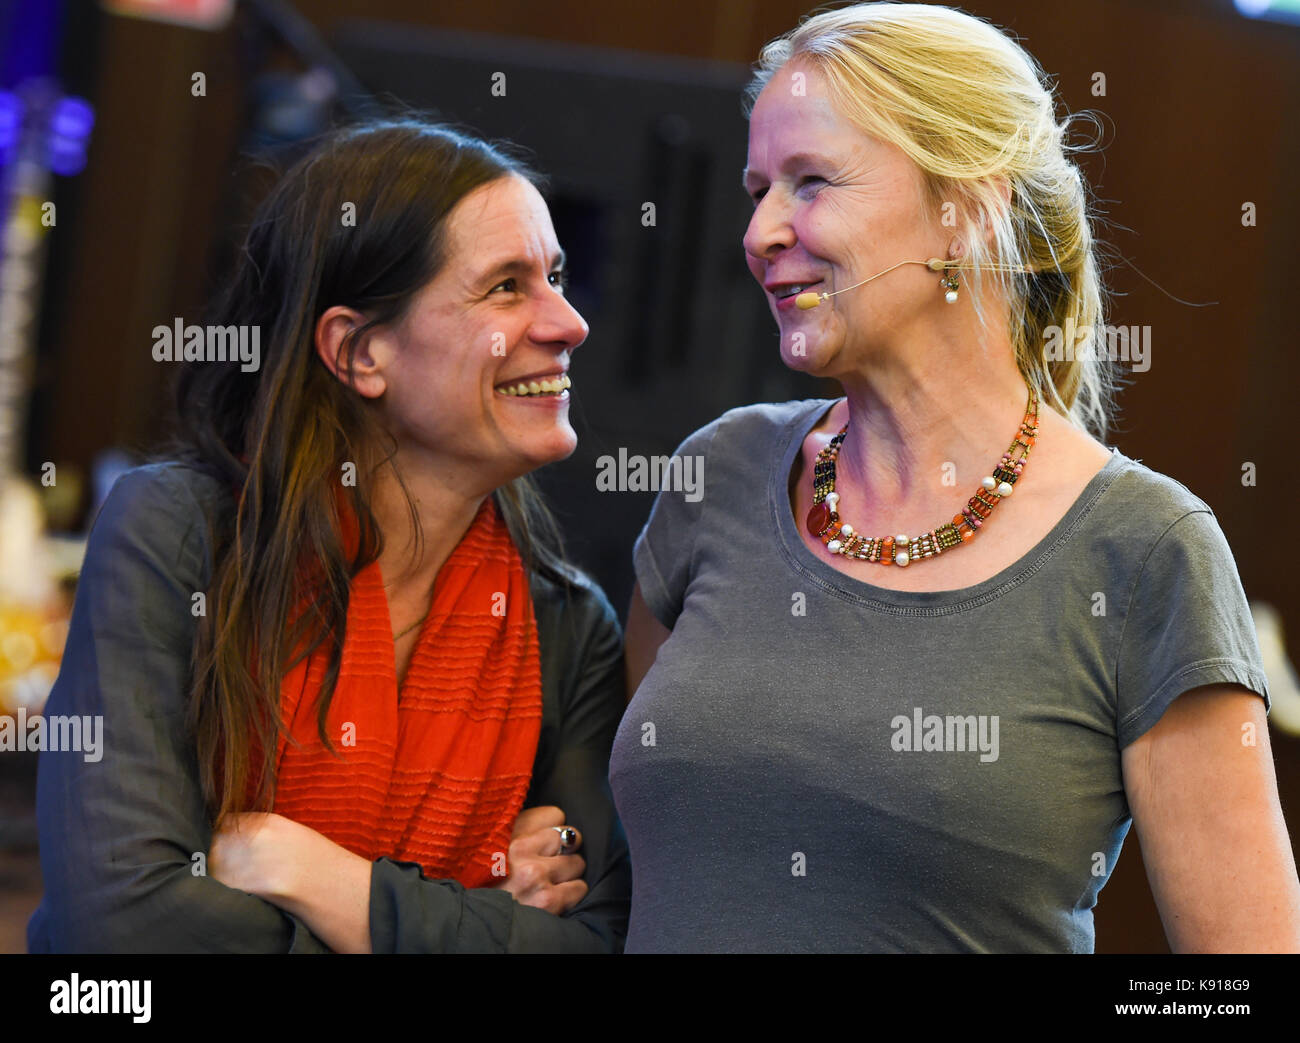 Hamburg University, Germany. 21st Sep, 2017. Children's book authors Isabel Abedi (l) and Cornelia Funke in - Stock Image